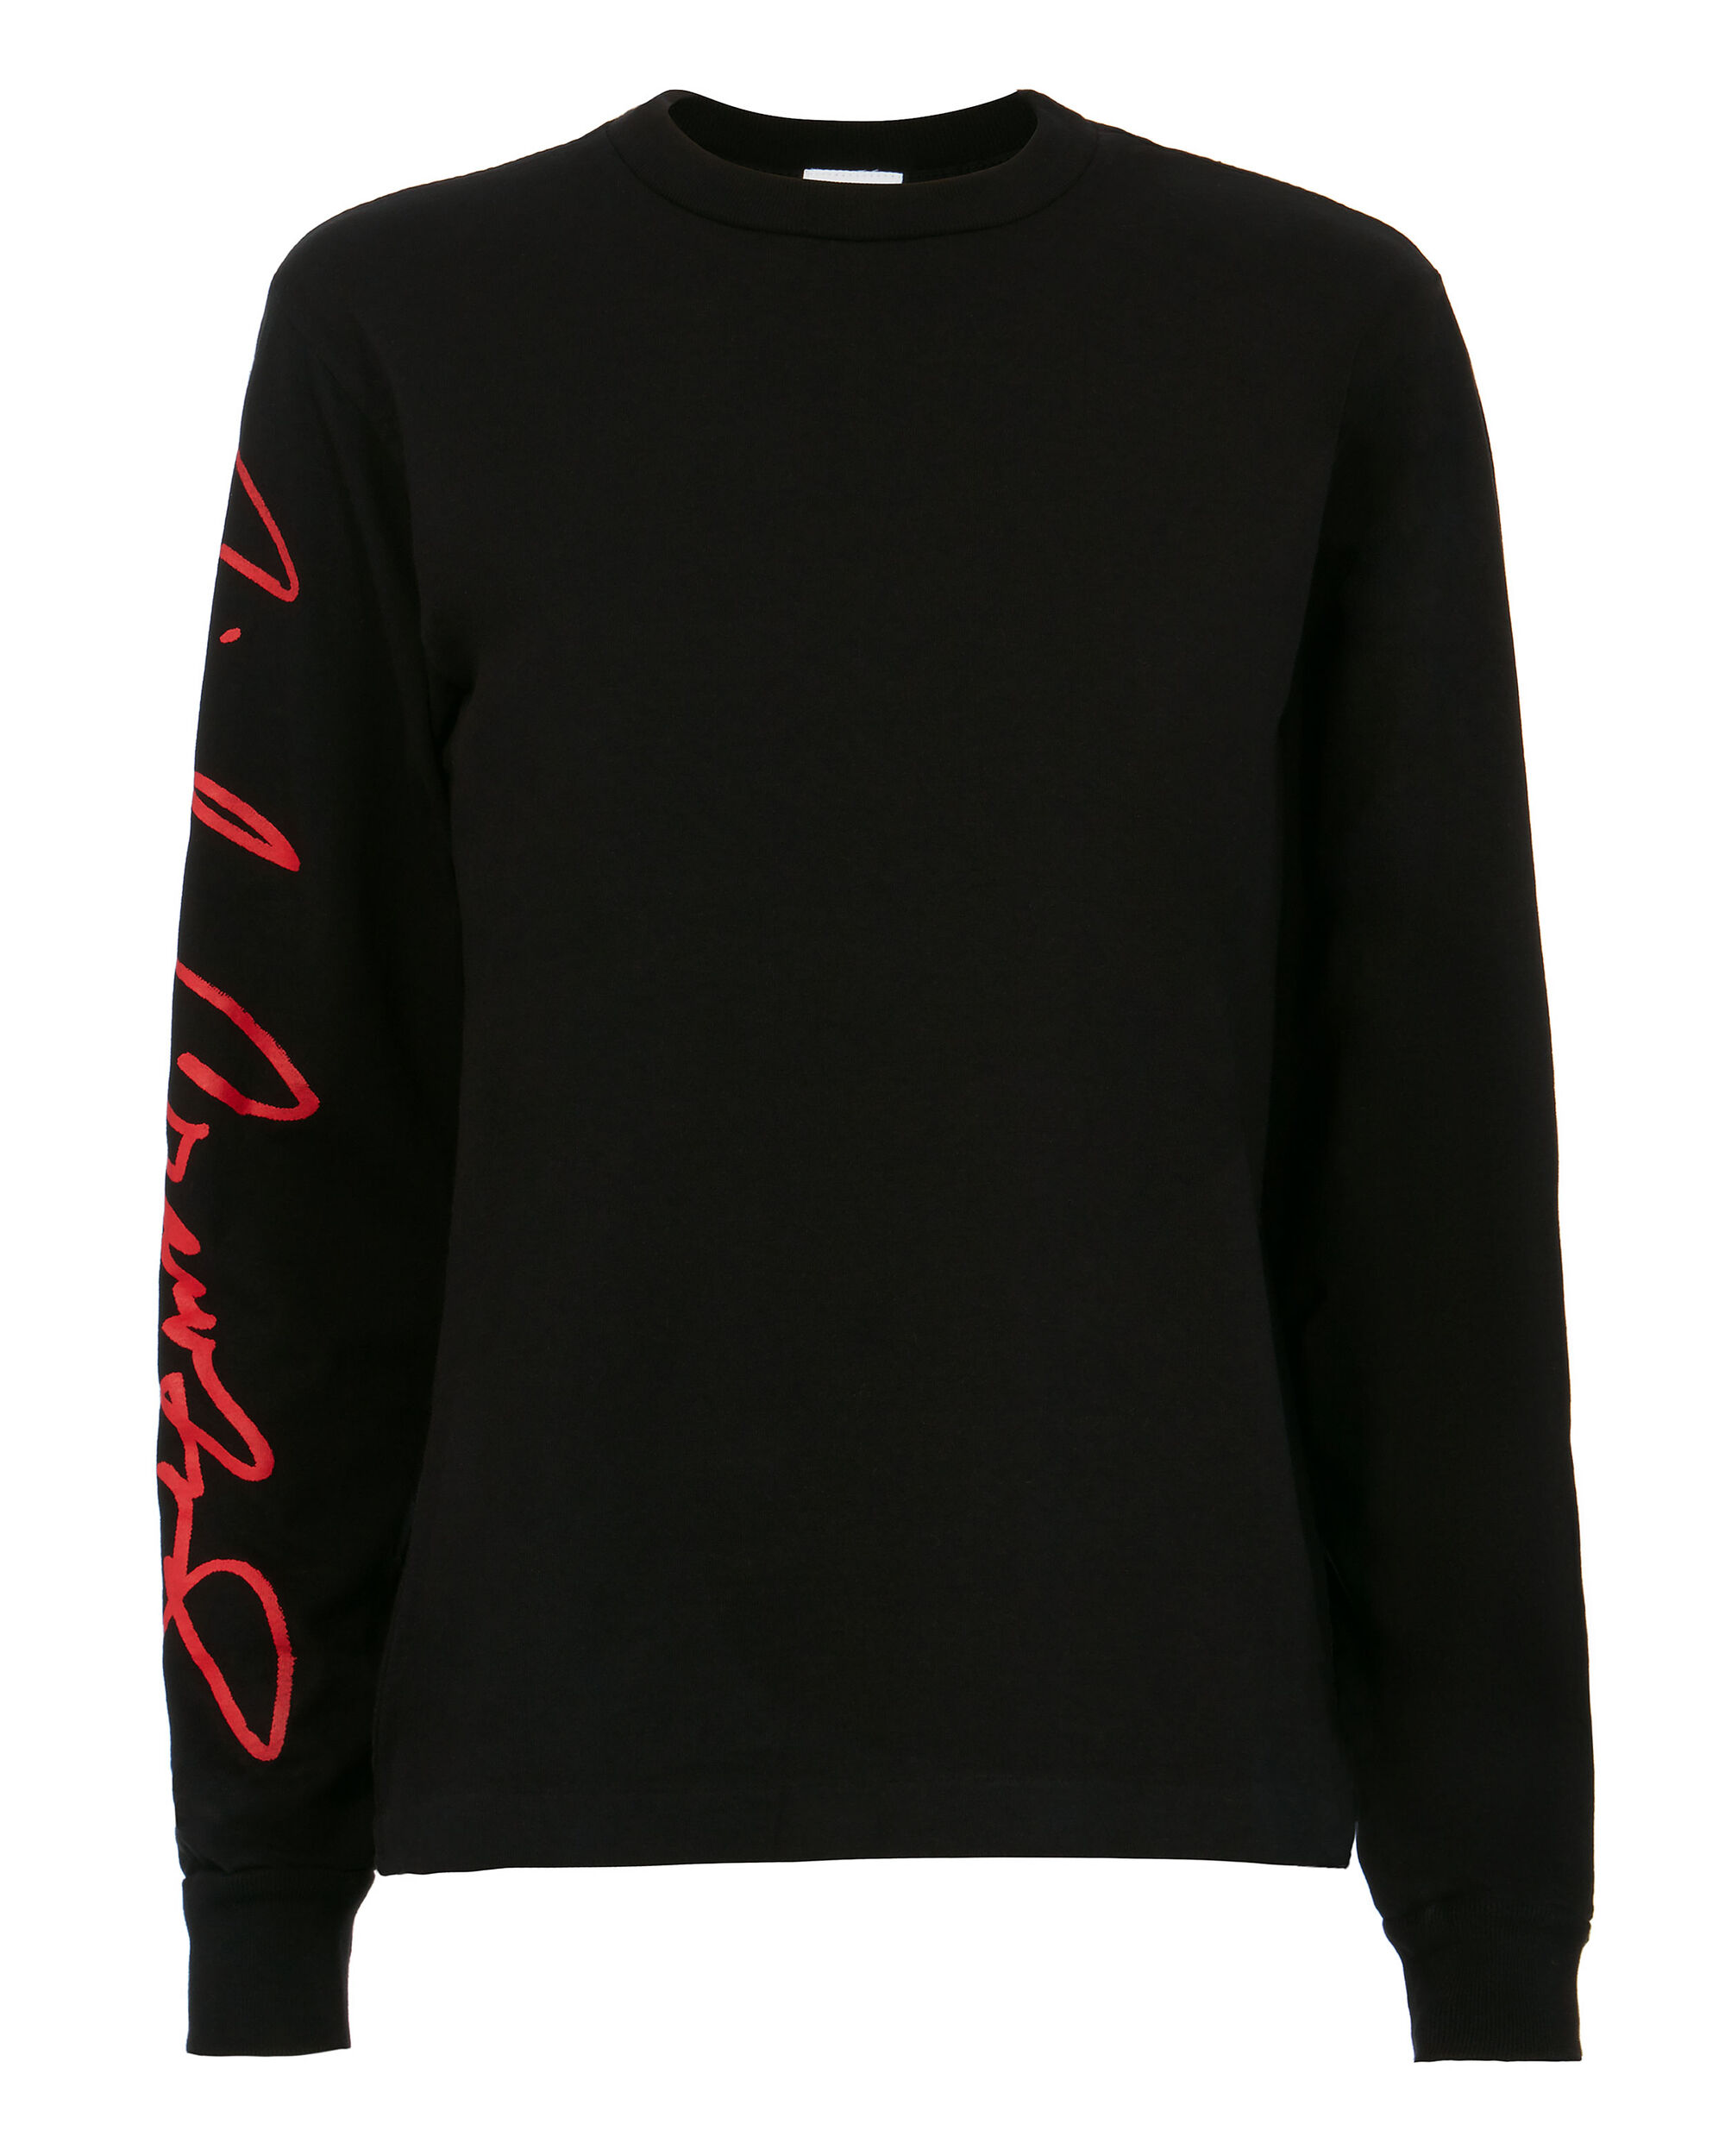 Cindy Crawford Signature Long-Sleeved T-Shirt, BLACK, hi-res